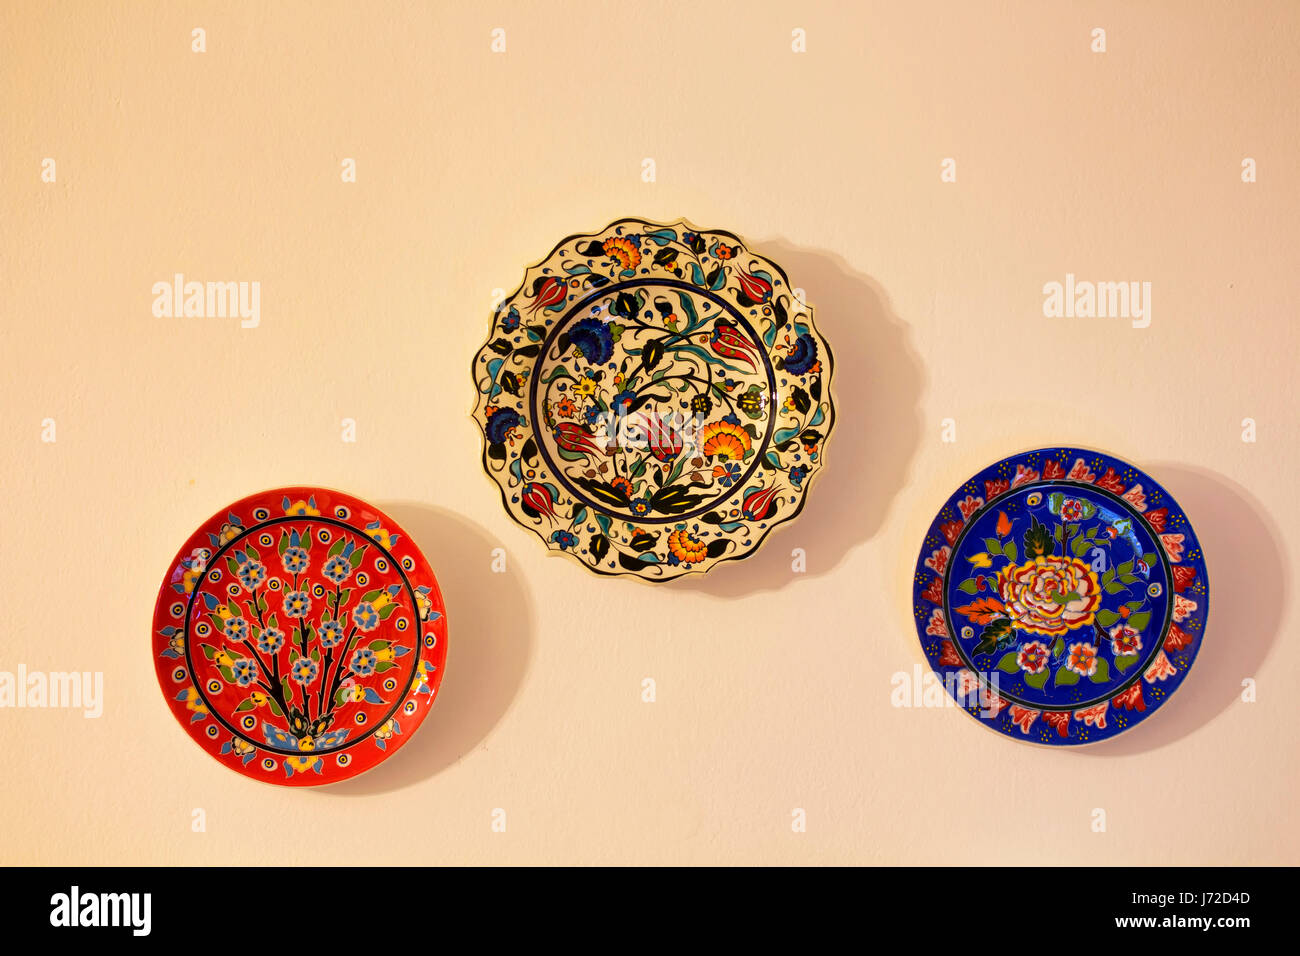 decorative ceramic plates on beige wall traditional turkish ottoman floral motives and patterns are - Decorative Wall Plates